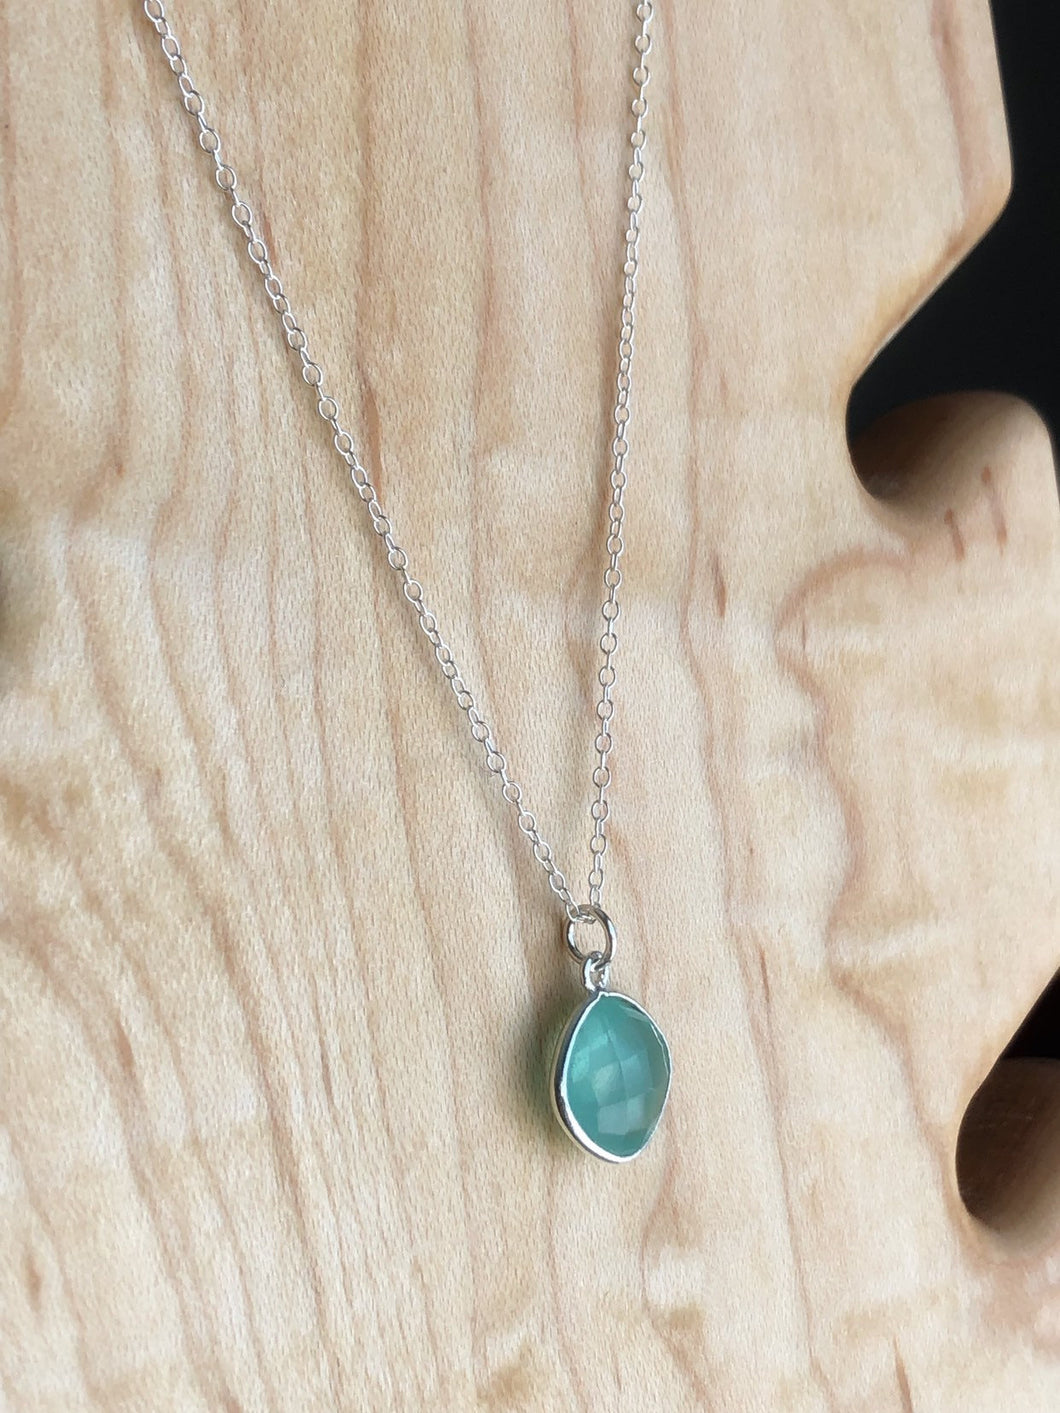 Blue chalcedony sterling silver necklace //